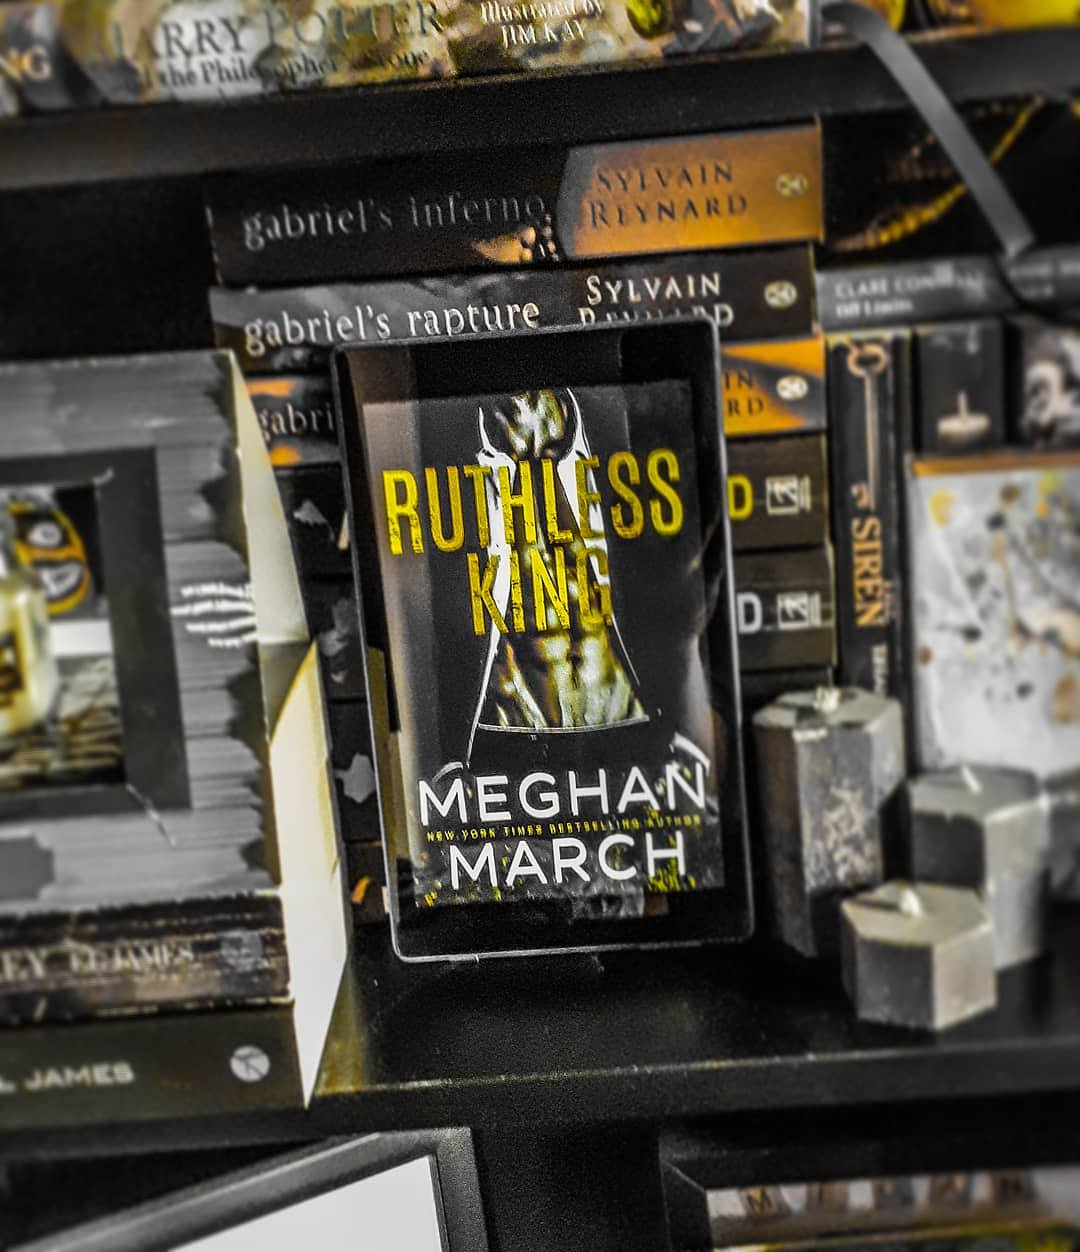 The Best Book I Have Read This Year So Far Is A Draw Between Two Meghan March Books Ruthless King Mount Trilogy 1 2017 Release And Savage Prince